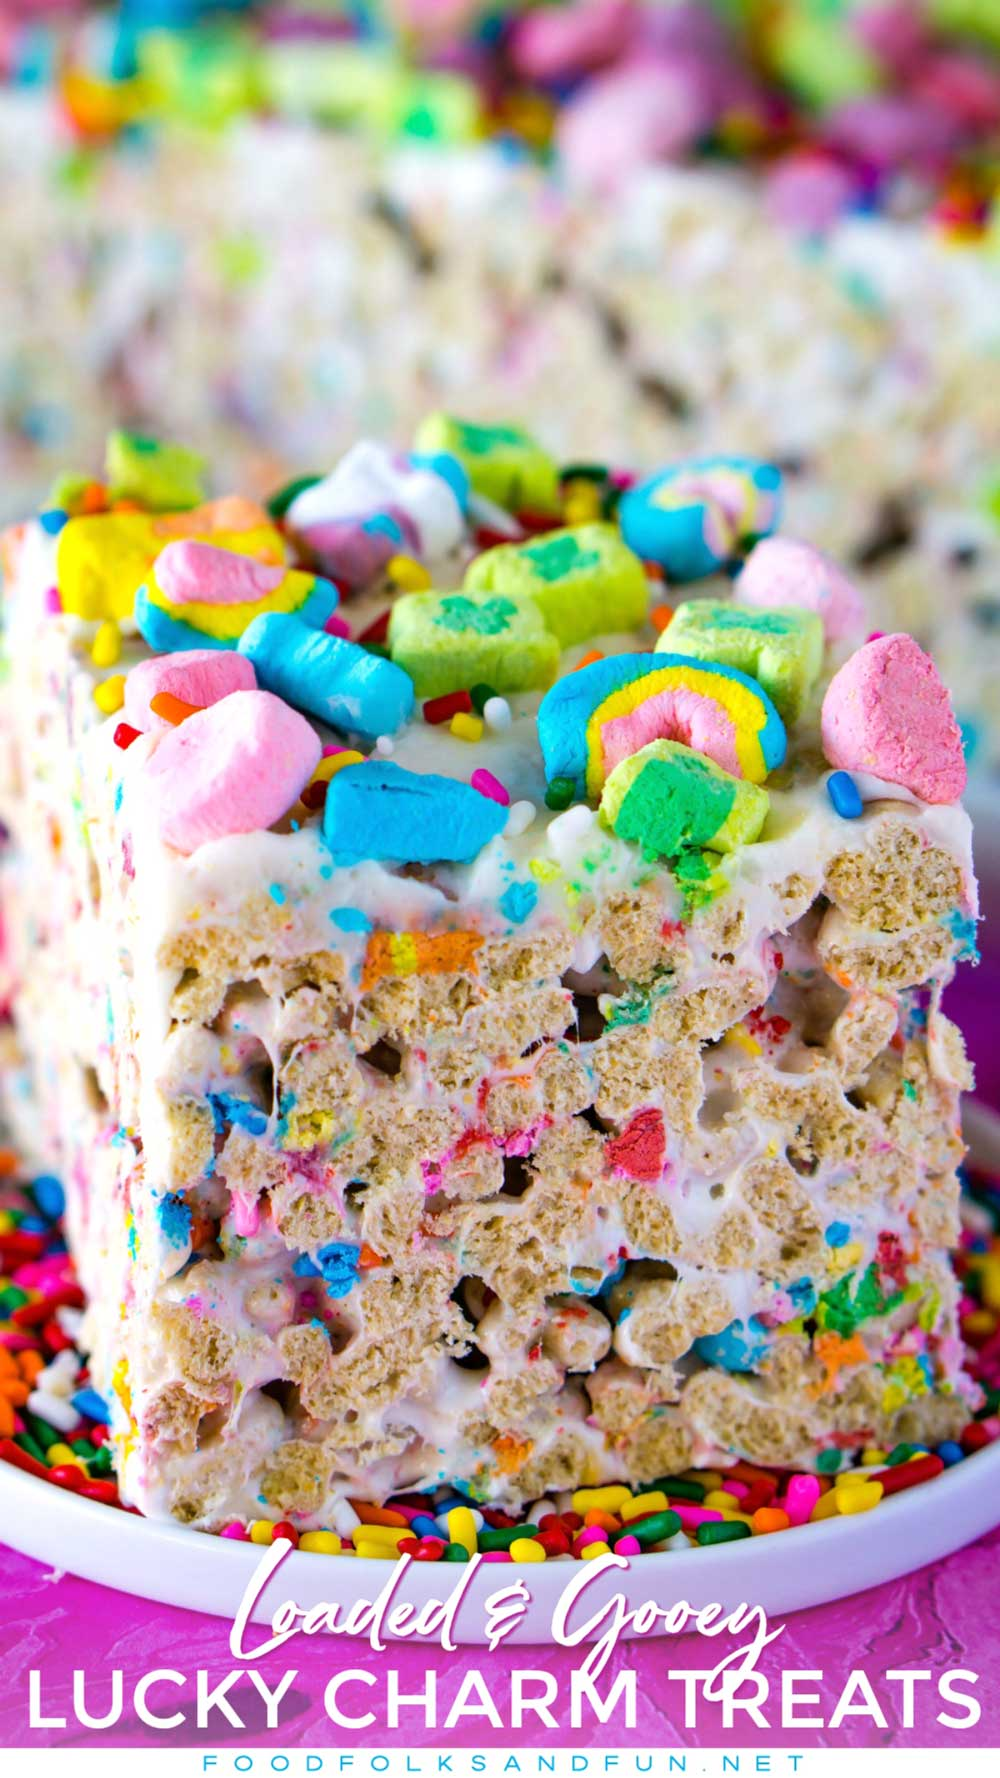 These Lucky Charms treats are gooey and loaded with marshmallows. They're topped with a thin layer of buttercream and even more marshmallows! via @foodfolksandfun